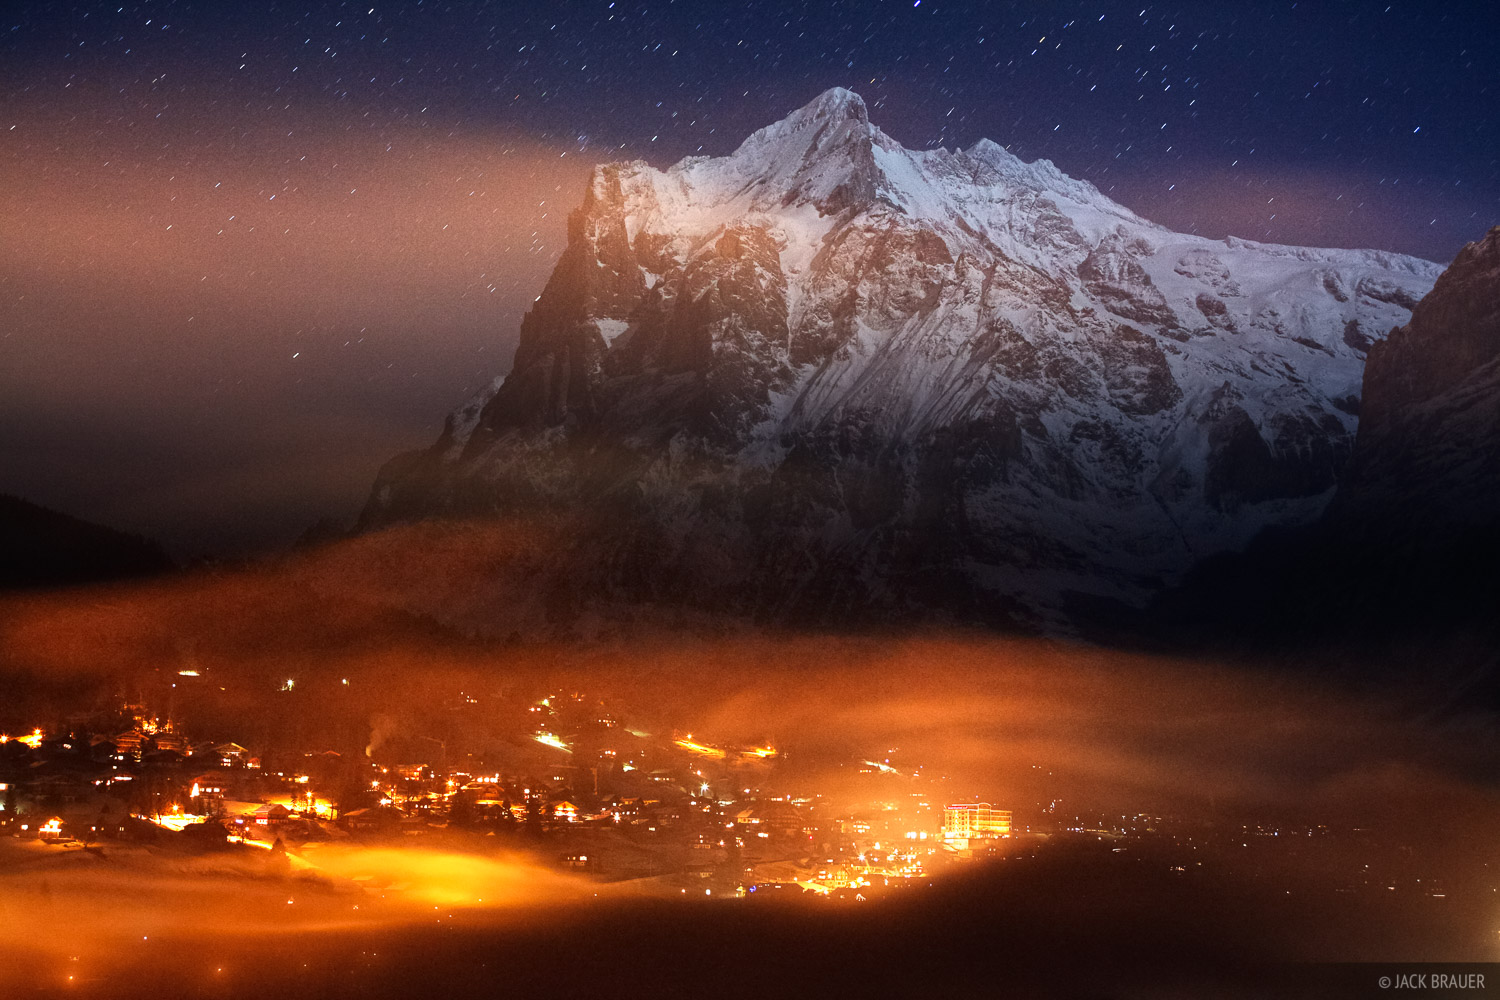 Grindelwald, Wetterhorn, moonlight, Jungfrau, Switzerland, Bernese, Alps, photo